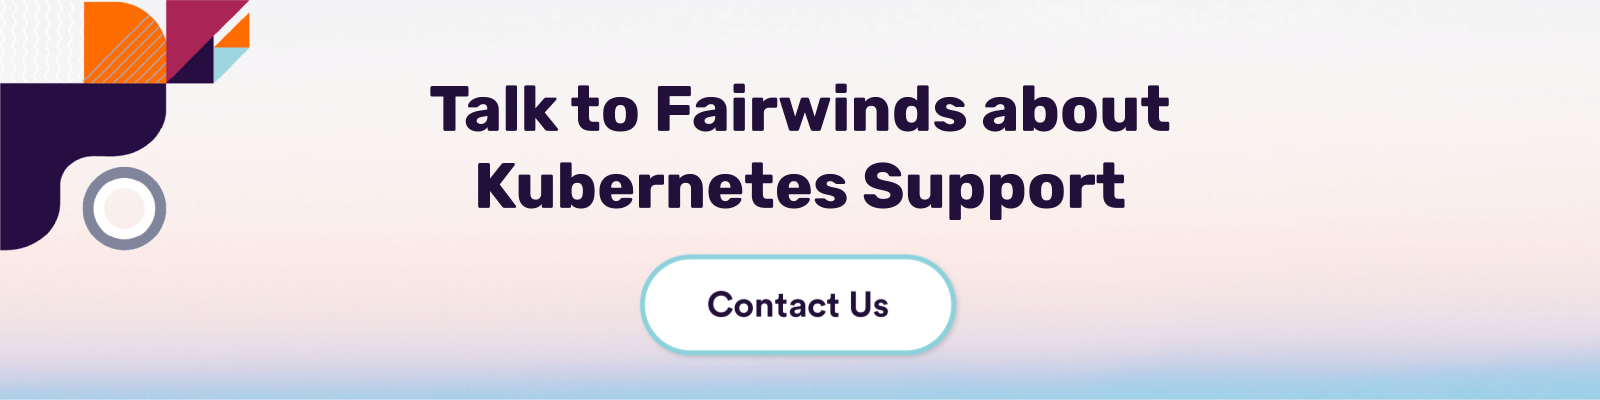 Talk to Fairwinds about Kubernetes Support